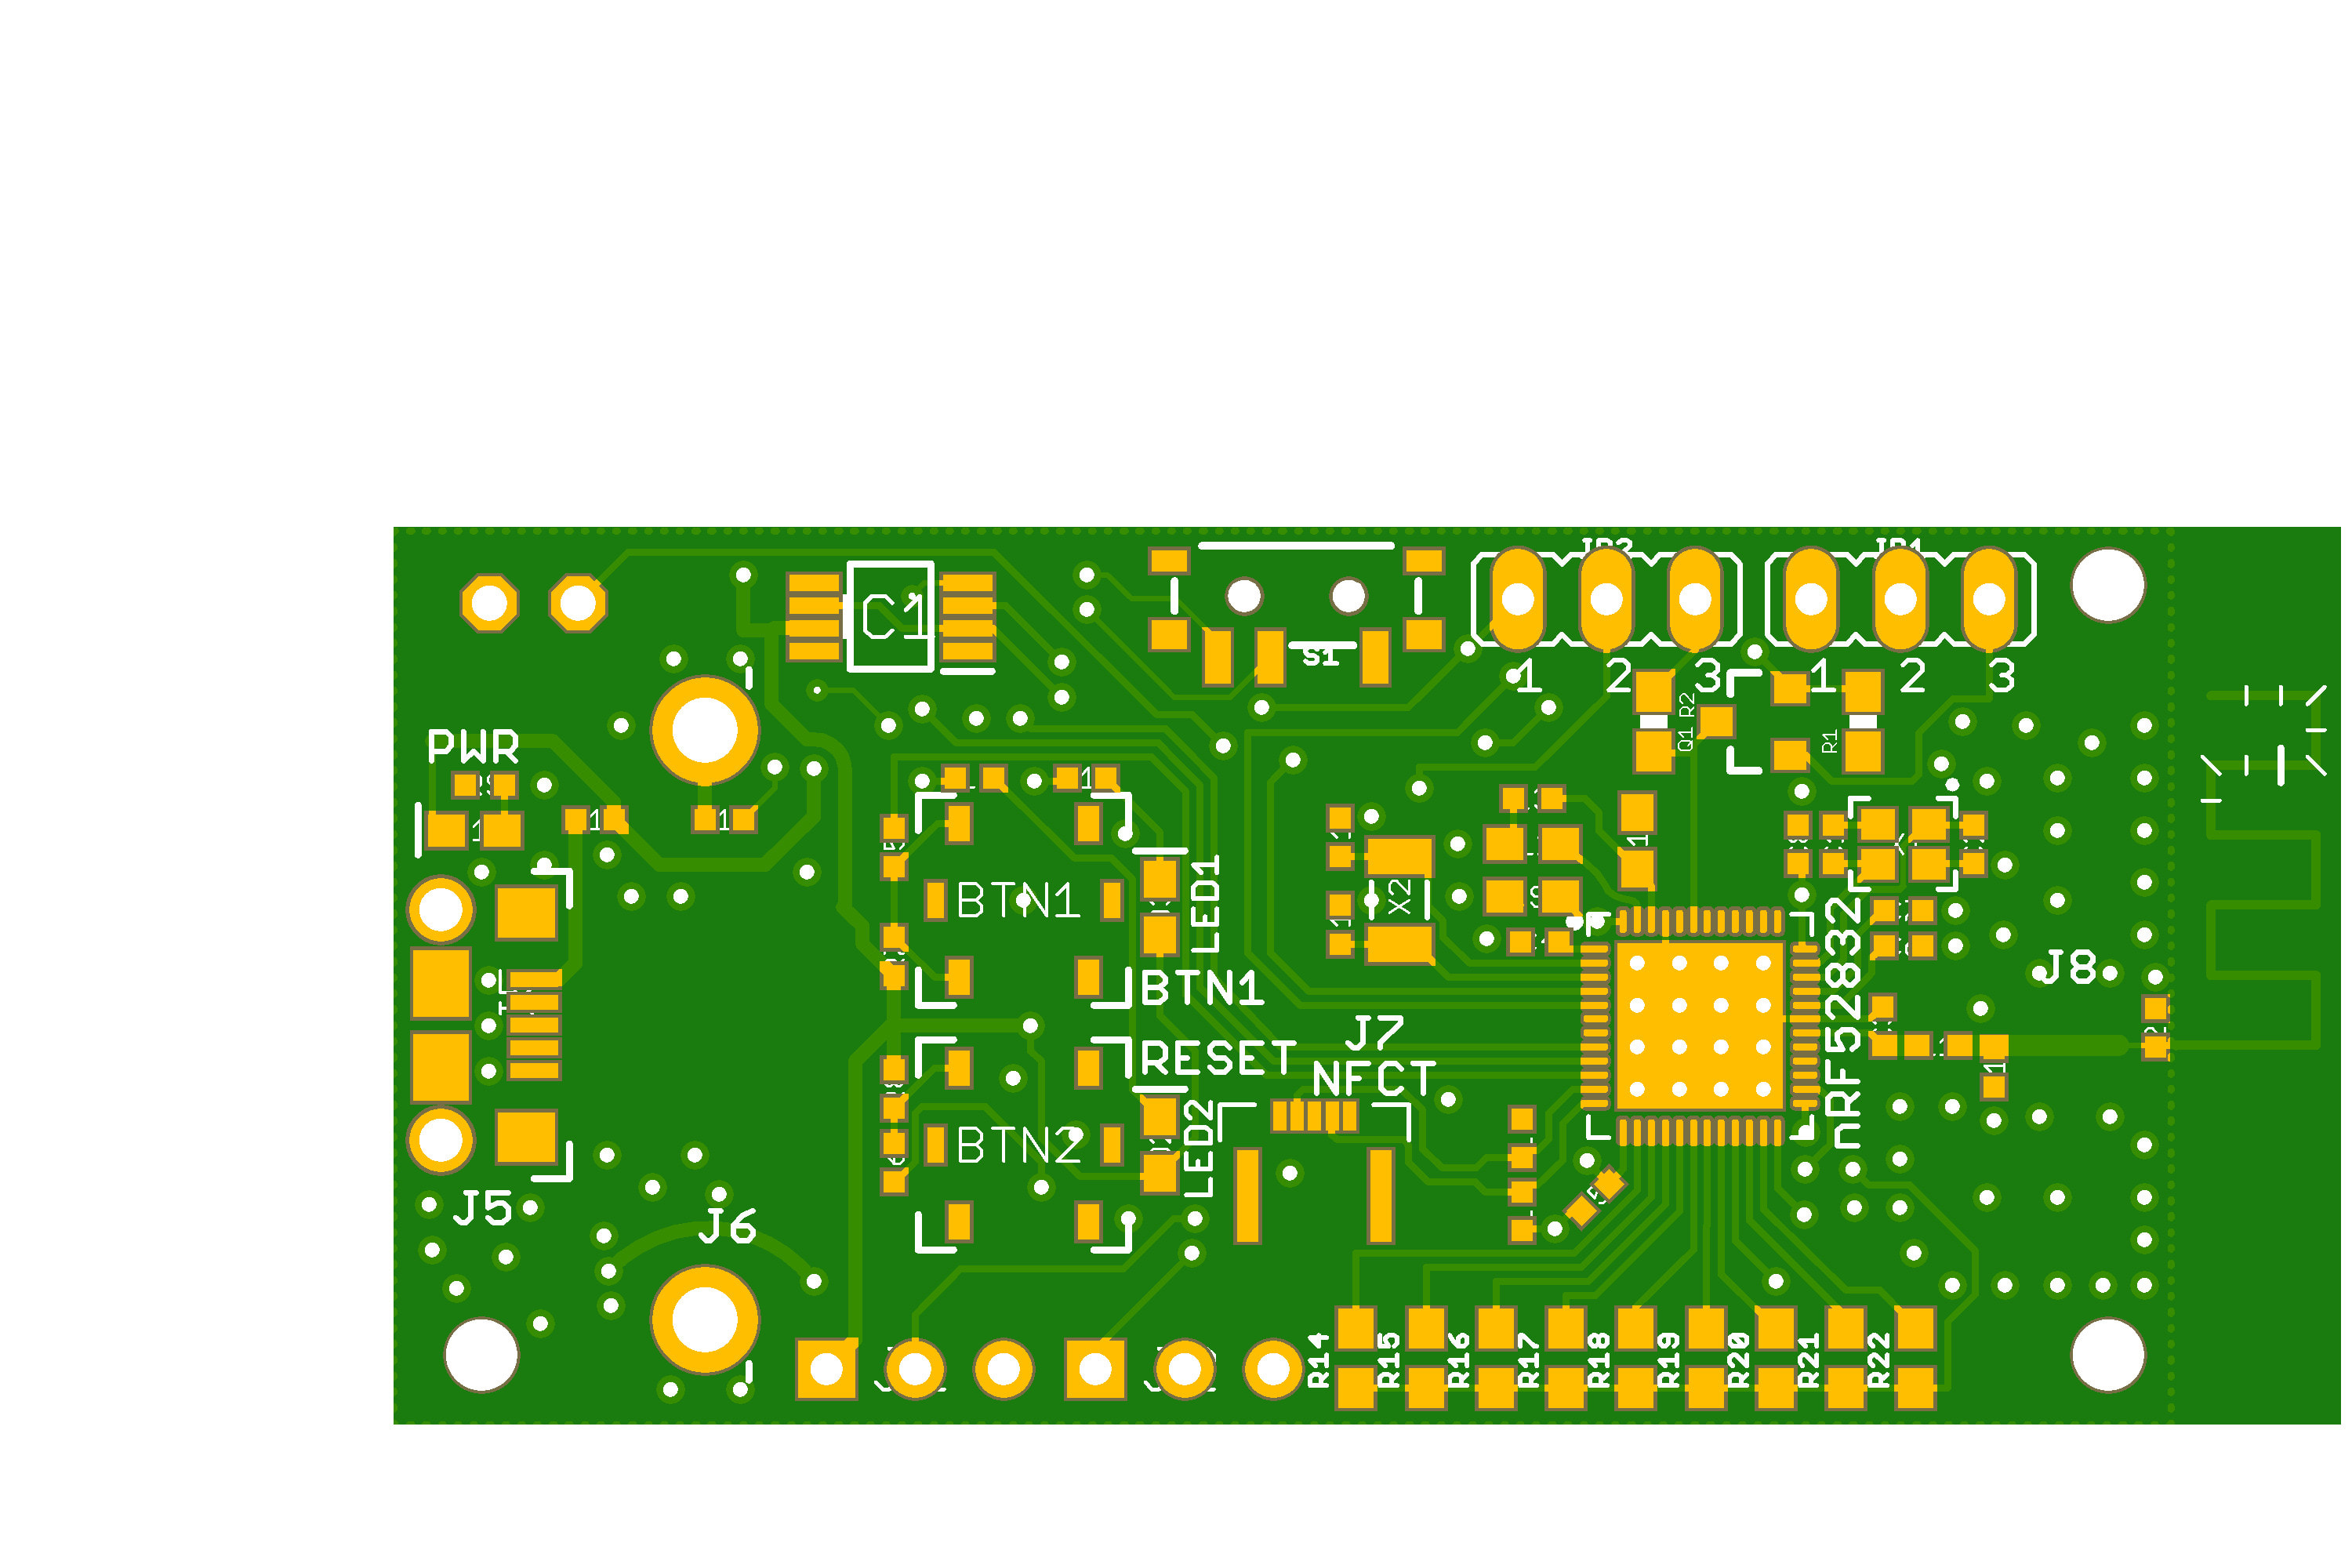 Design Pcb Boards Using Eagle Cad Tool By Dtquang89